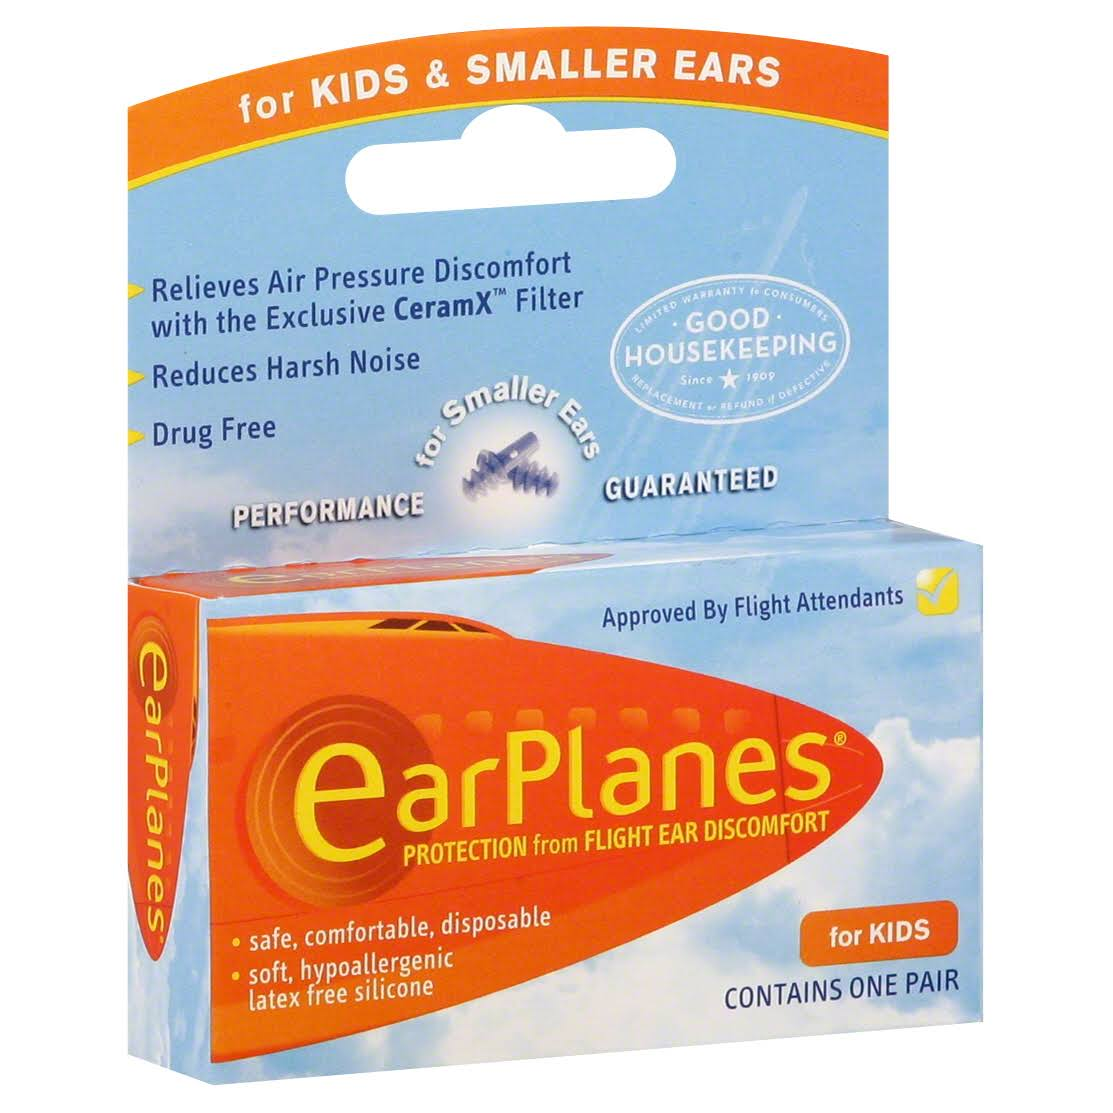 Earplanes Protection From Flight Ear Discomfort - Kids, One Pair